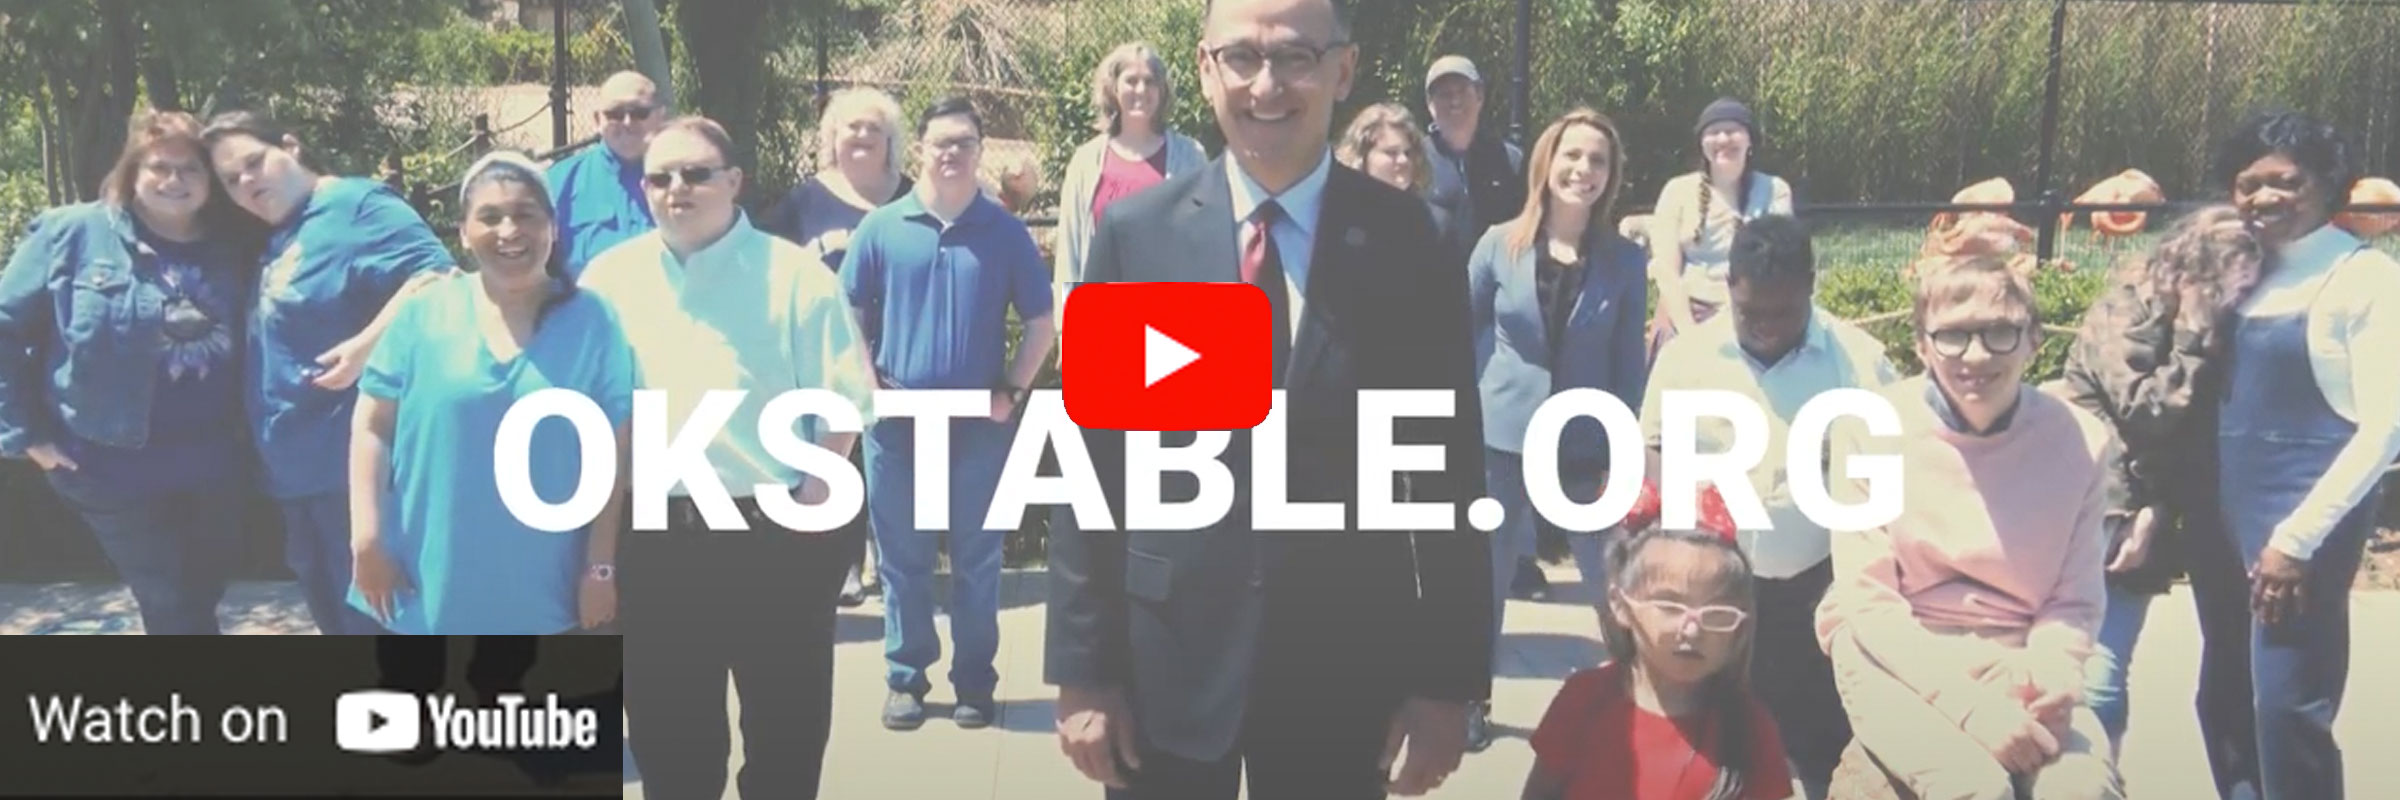 OK-Stable